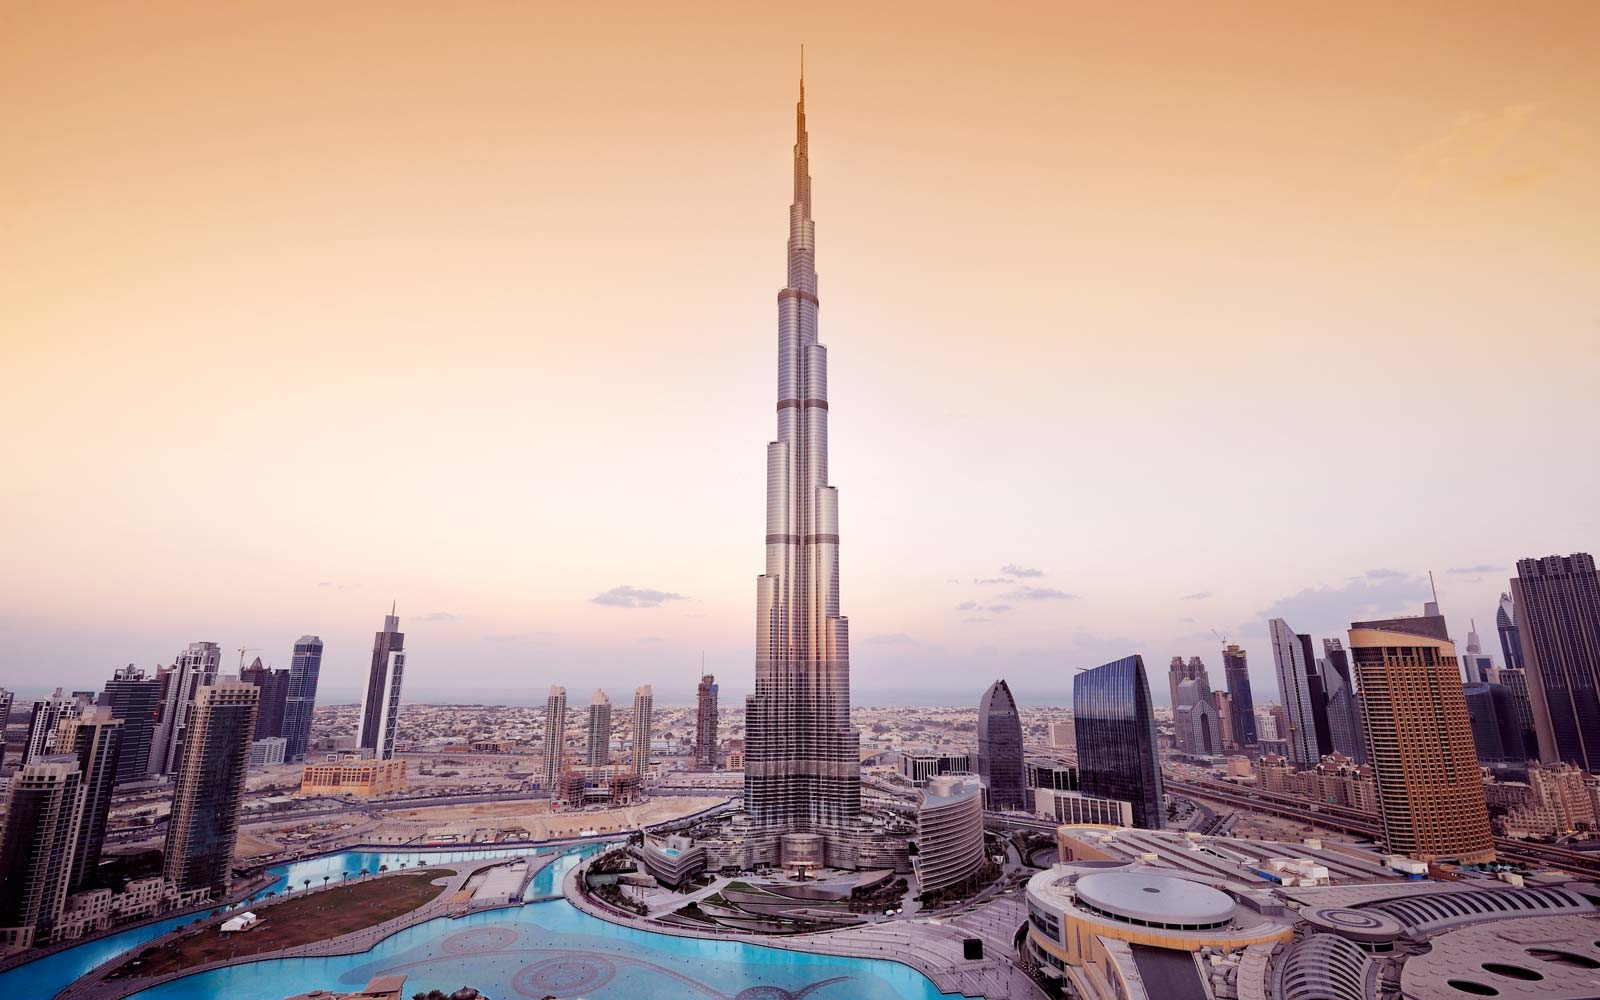 New tallest building